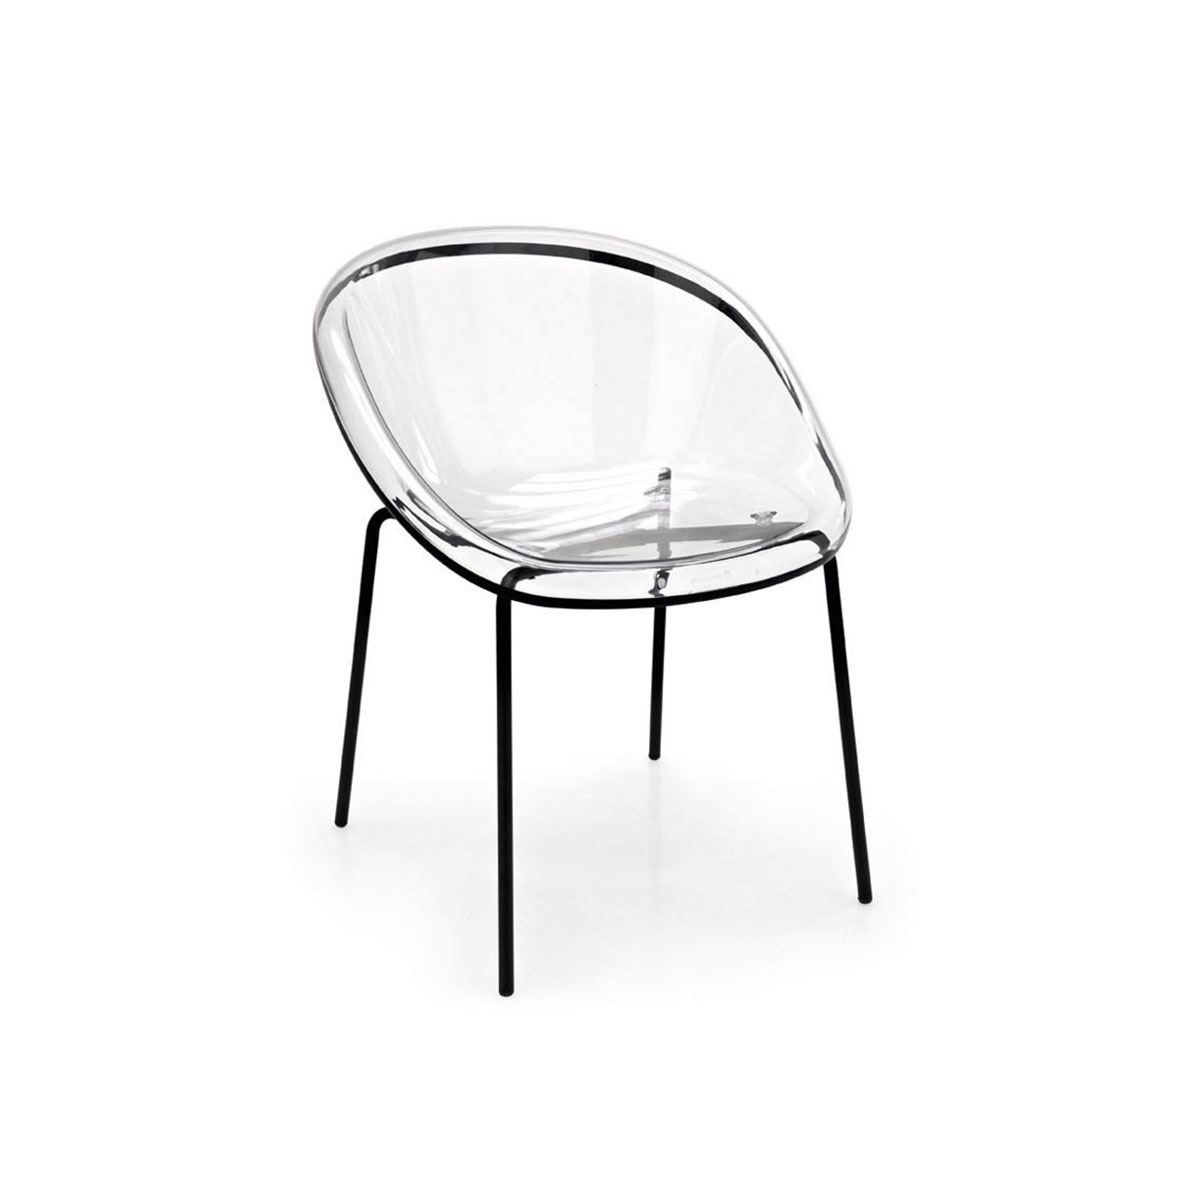 polycarbonate furniture. Bloom Metal And Polycarbonate Chair Furniture